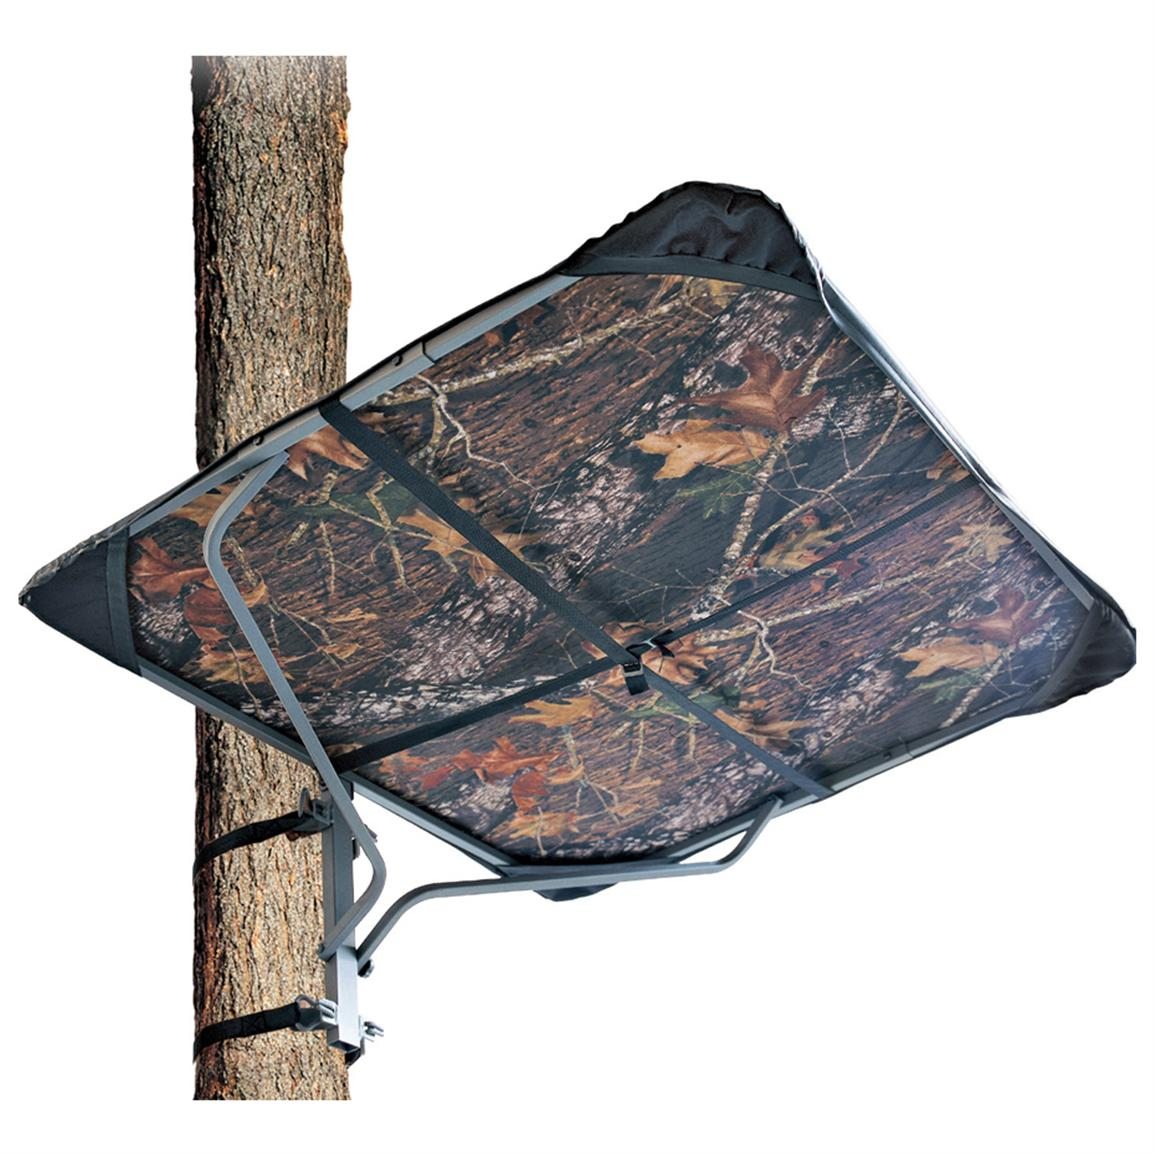 Guide Gear® Universal Tree Stand Shelter, Camo